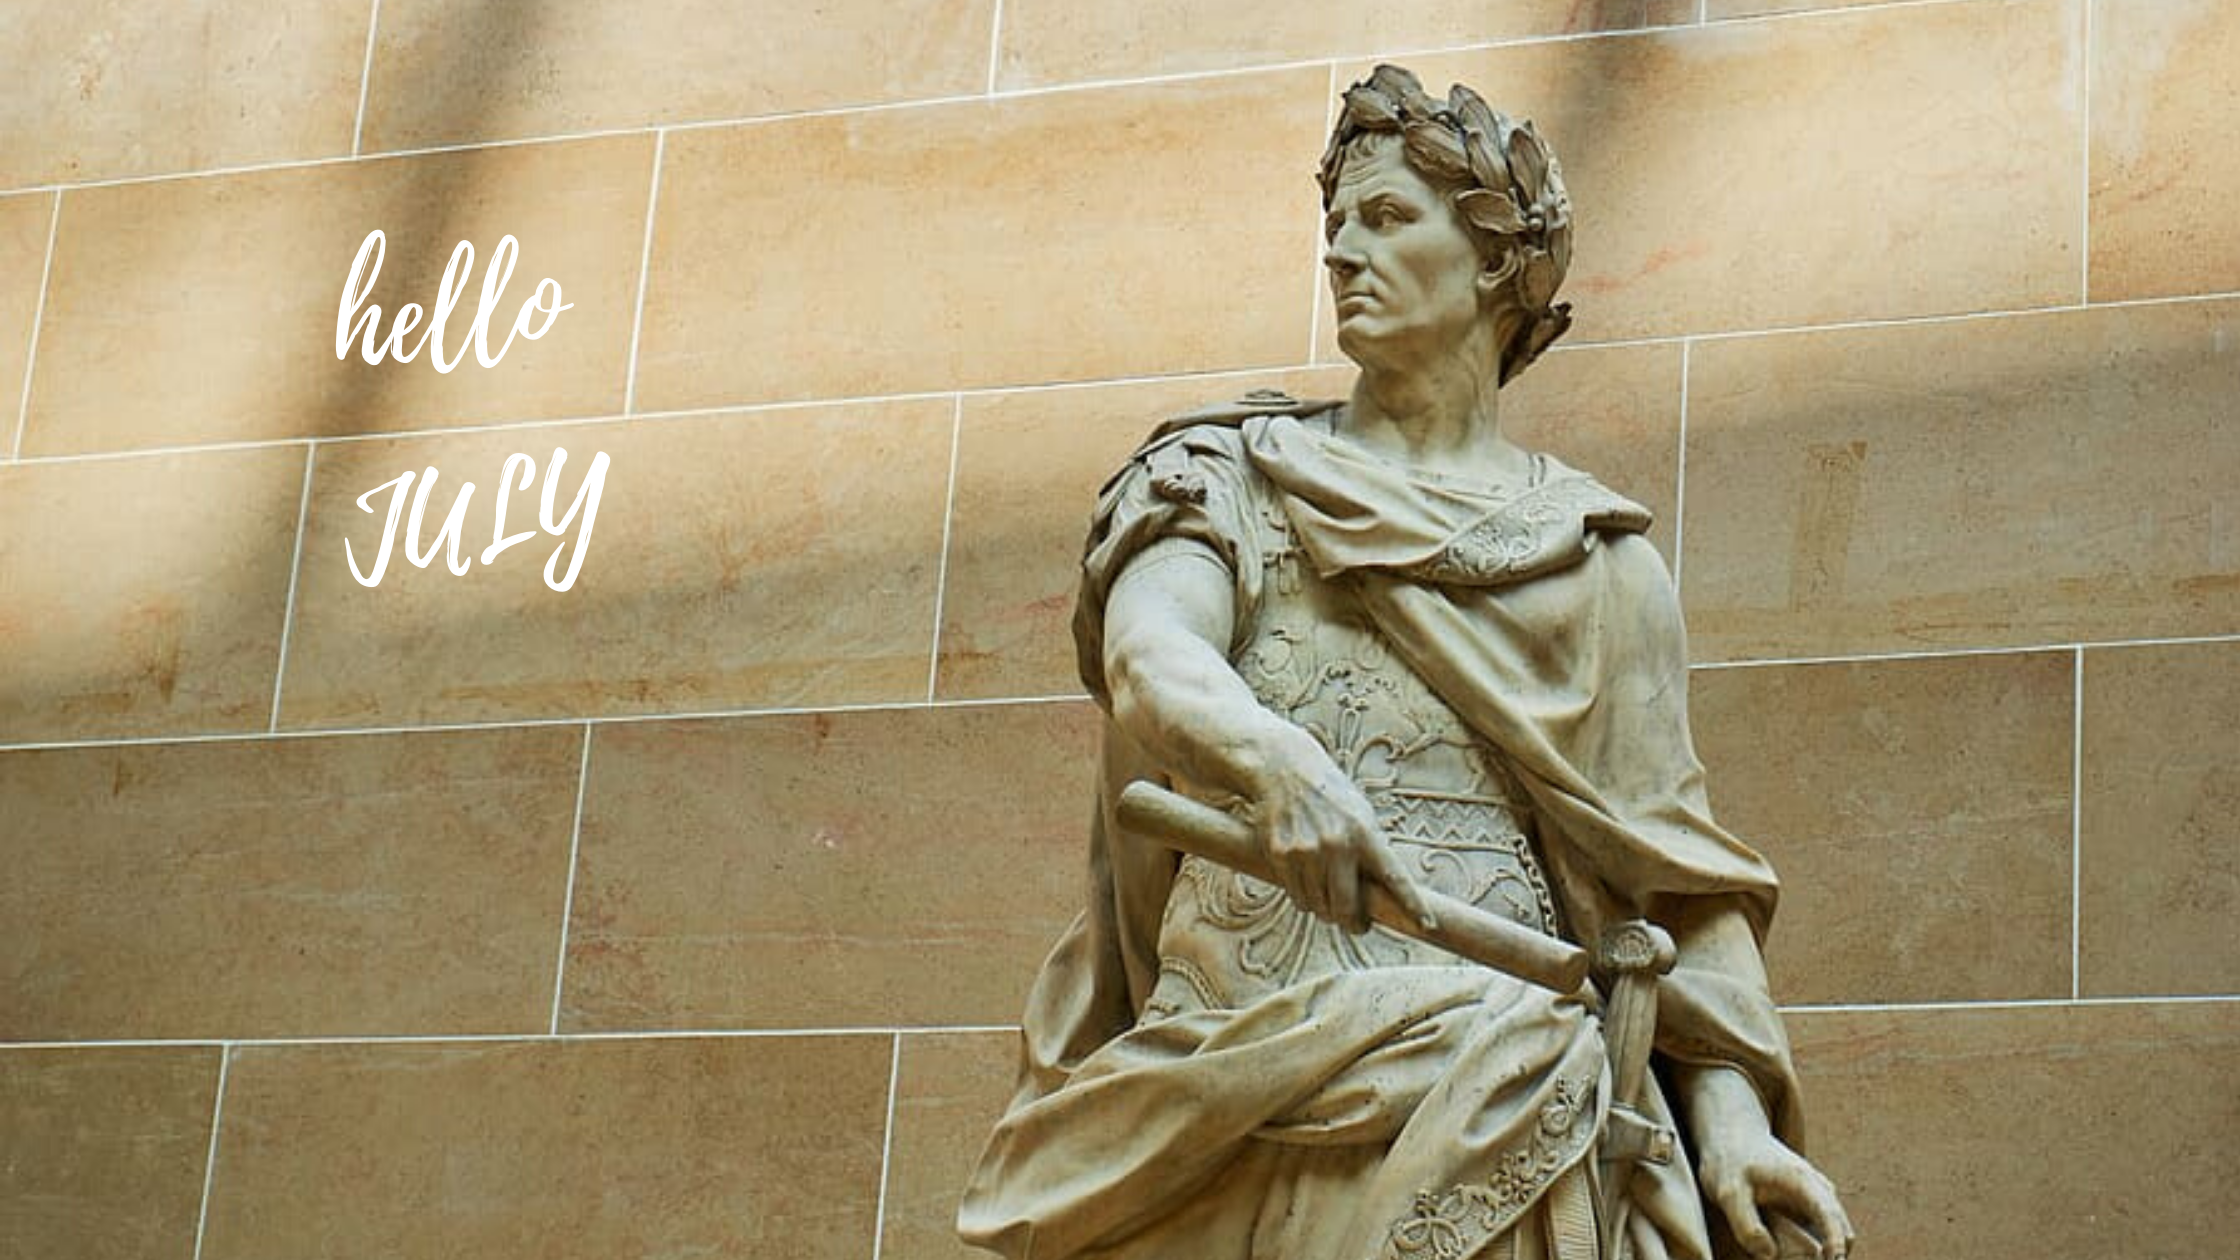 July: Special deals and occasions for the month named after Julius Caesar